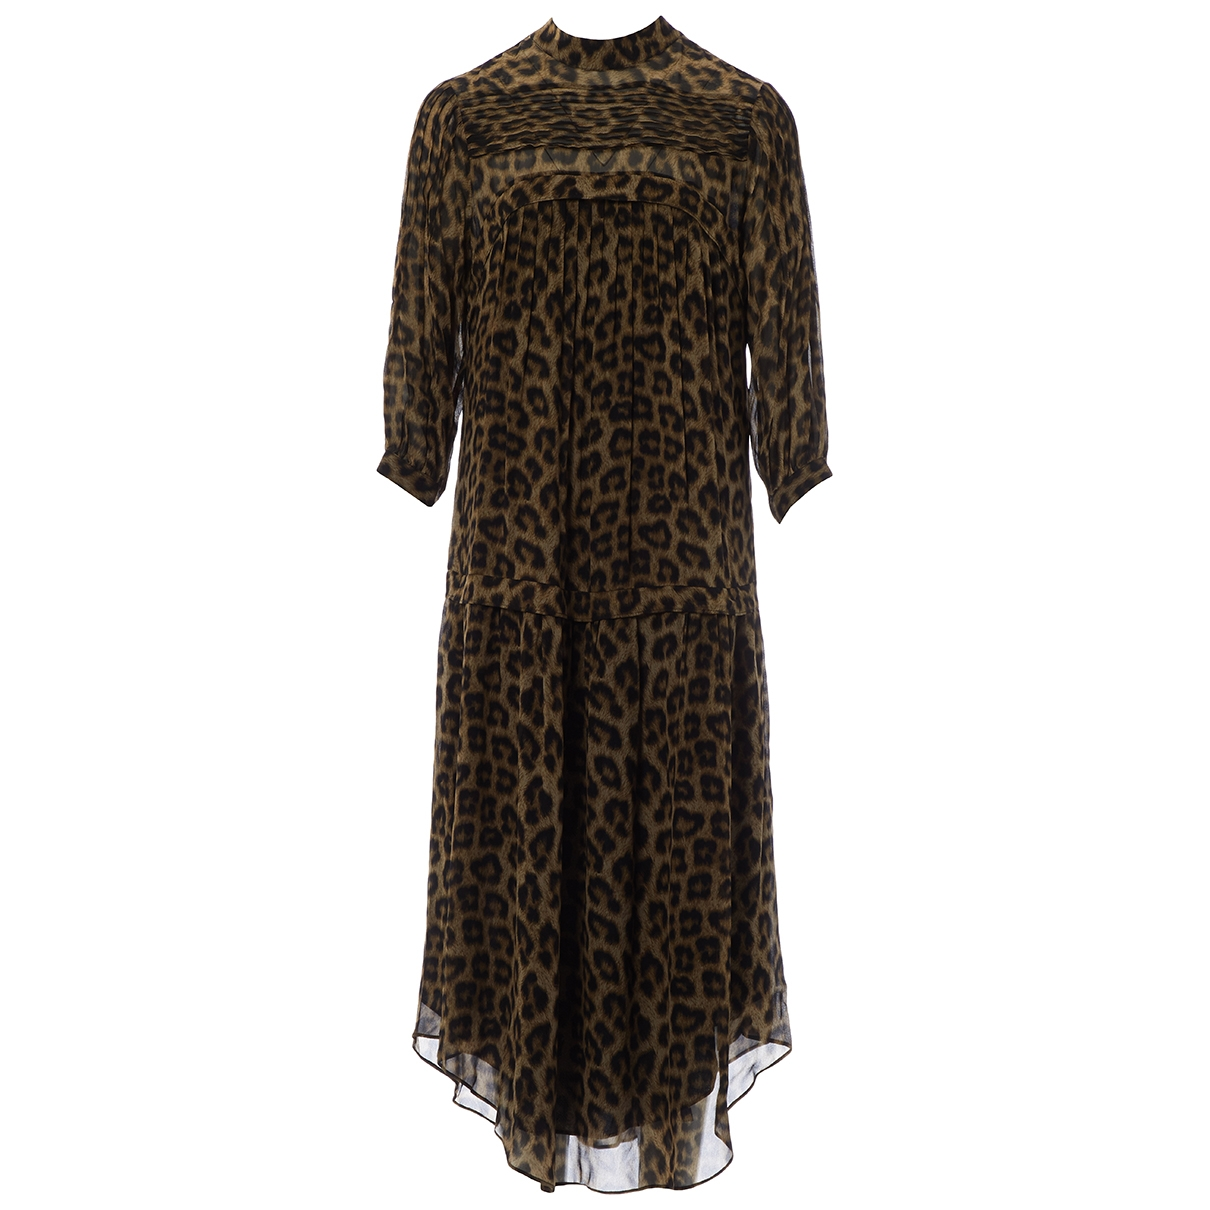 Ba&sh X Vestiaire Collective Fiona Brown dress for Women 1 0-5